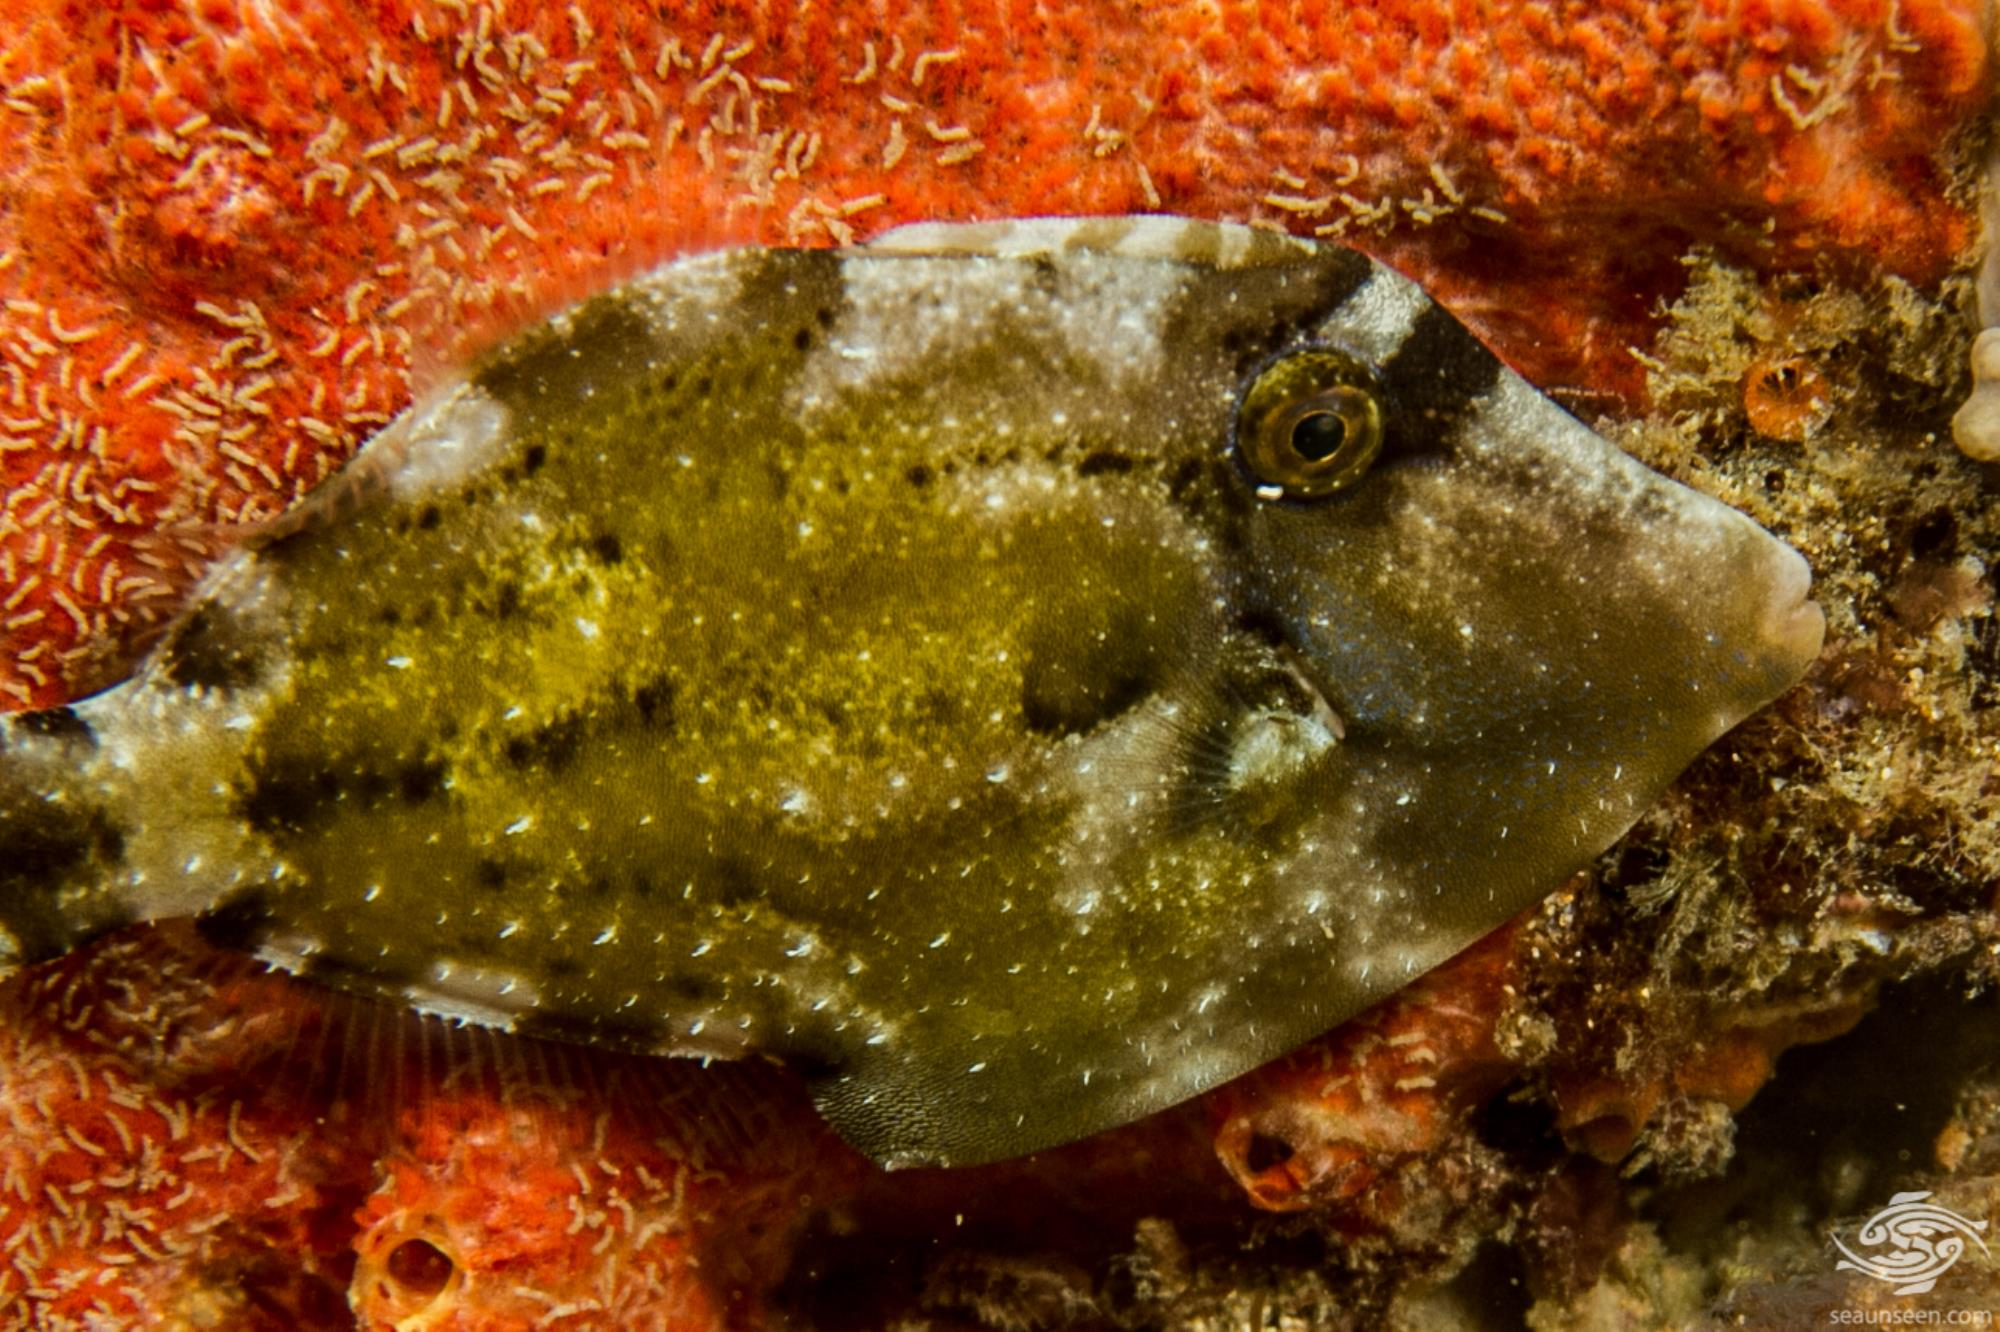 Spectacled Filefish (Cantherhines fronticinctus) is also known as the Spectacled Leatherjacket